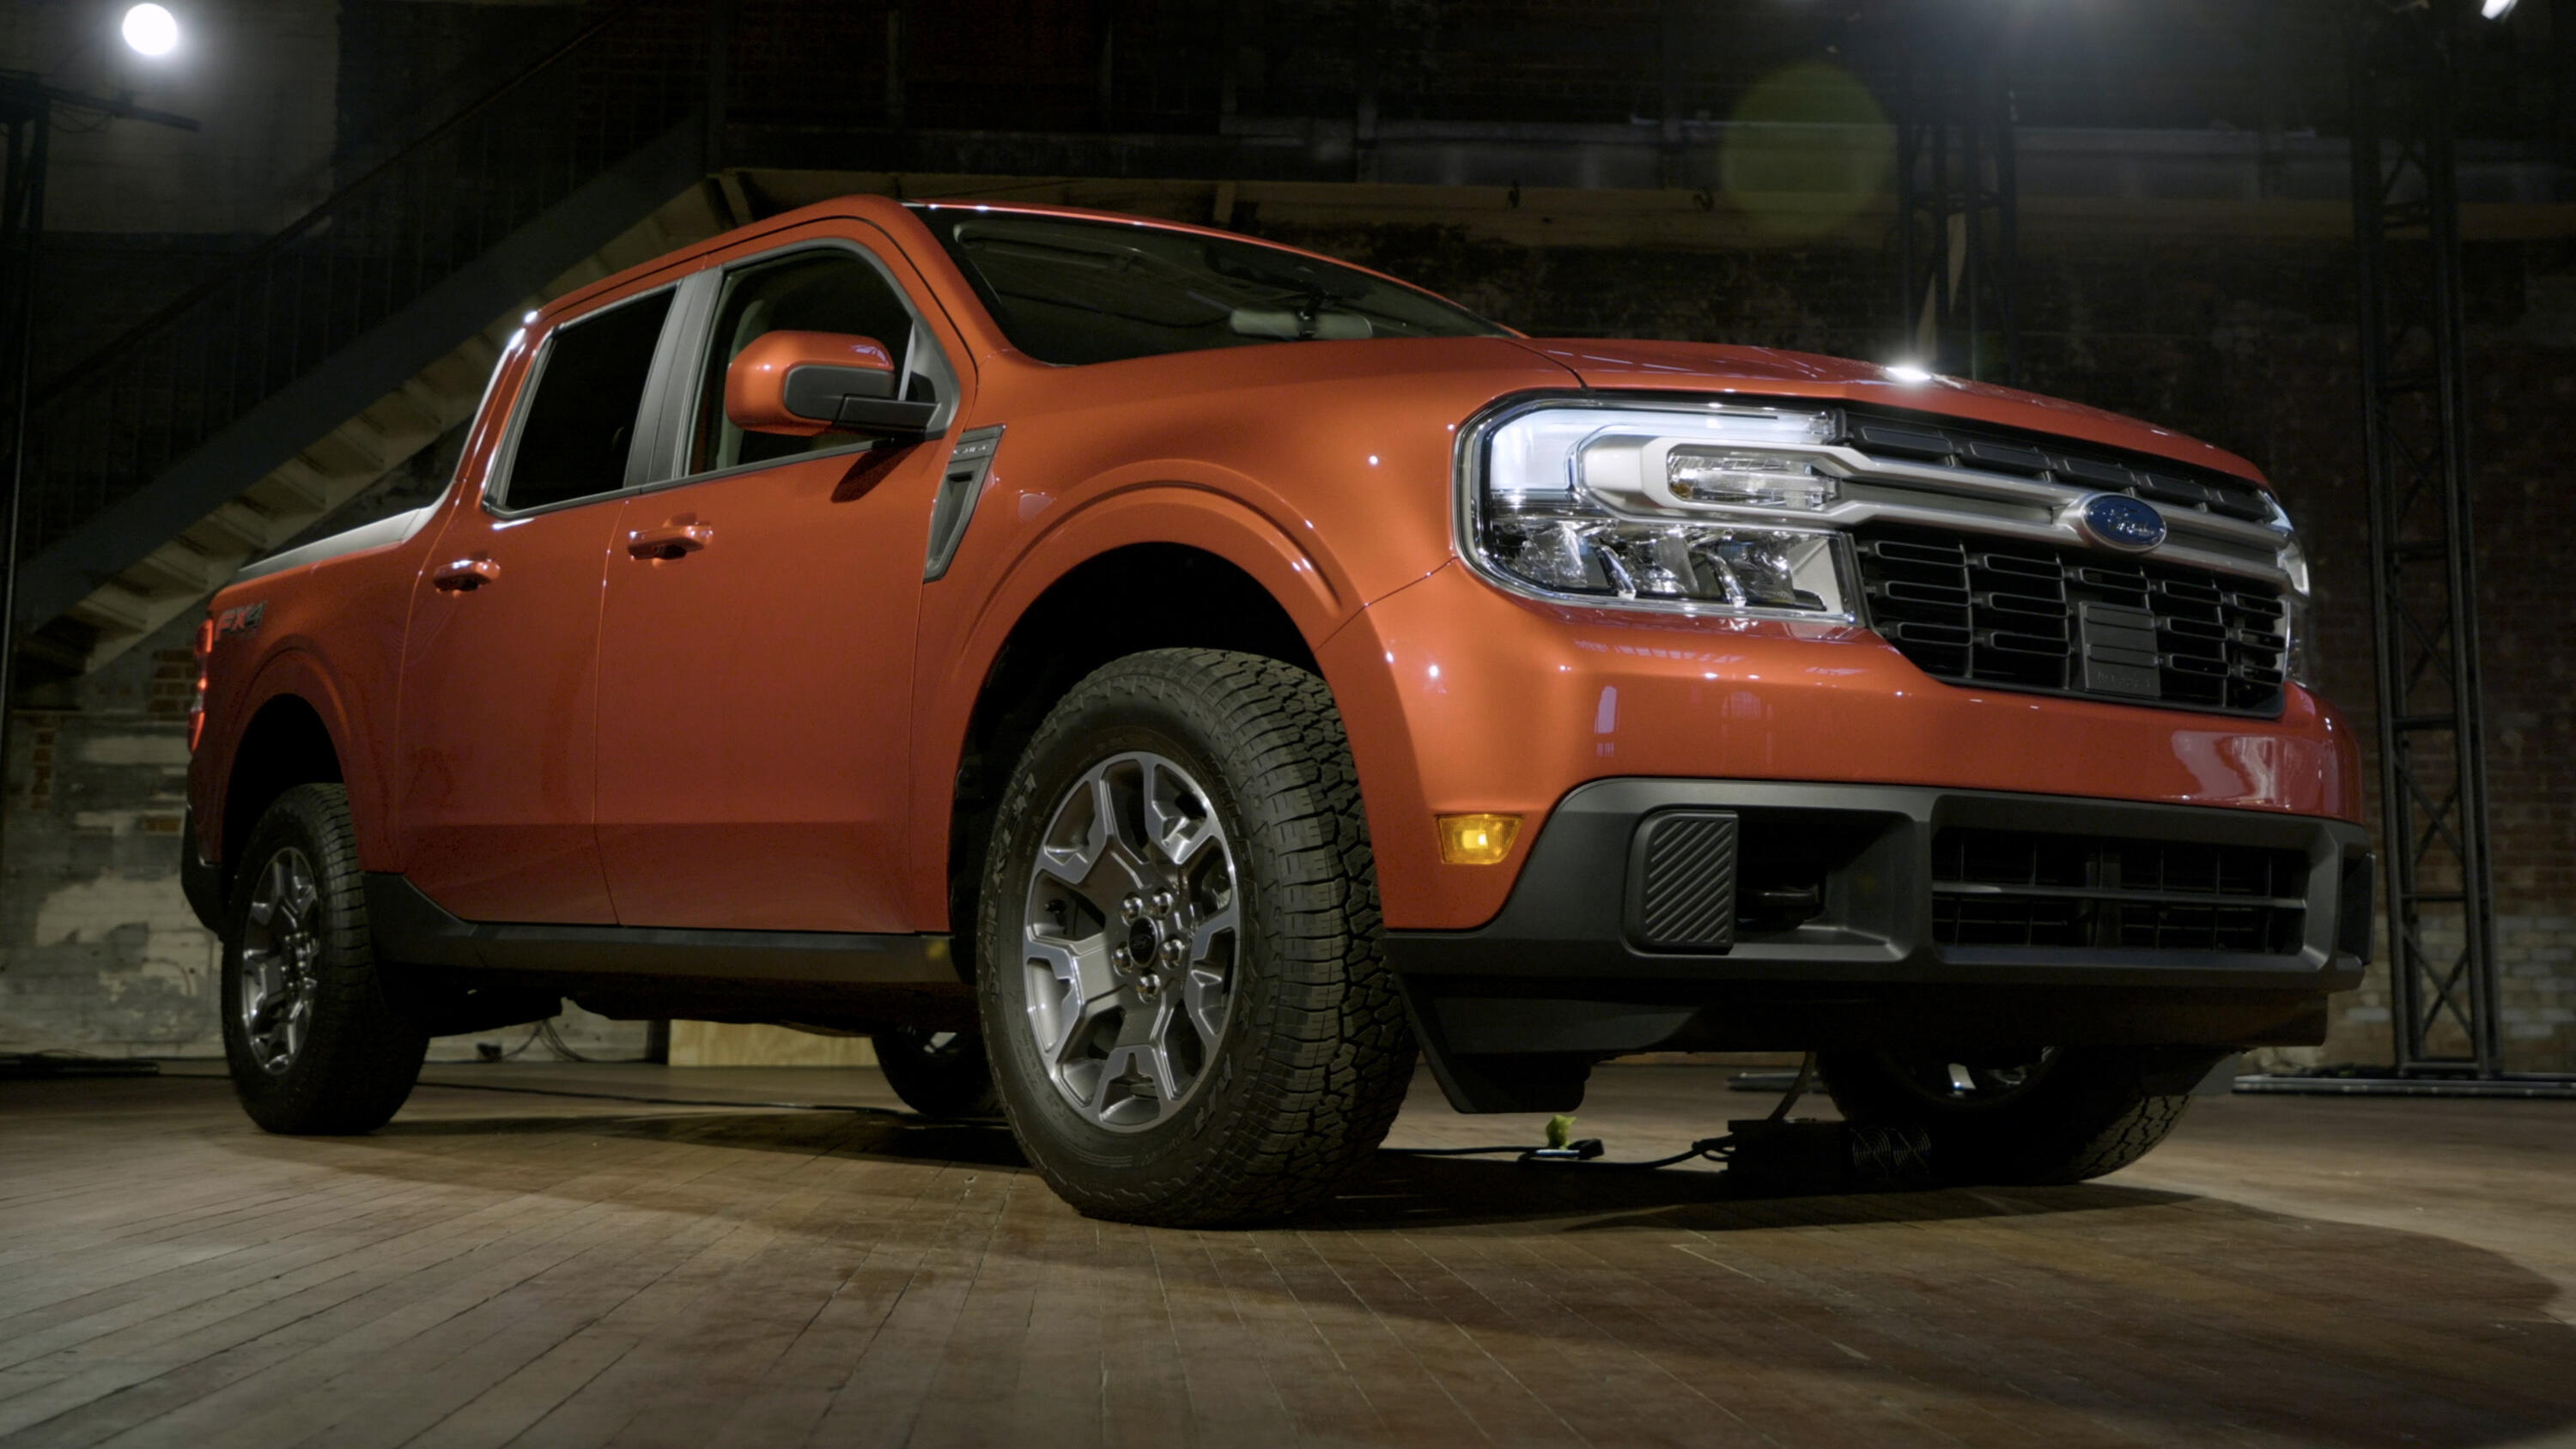 Video: 2022 Ford Maverick: Big truck features, pint-sized package